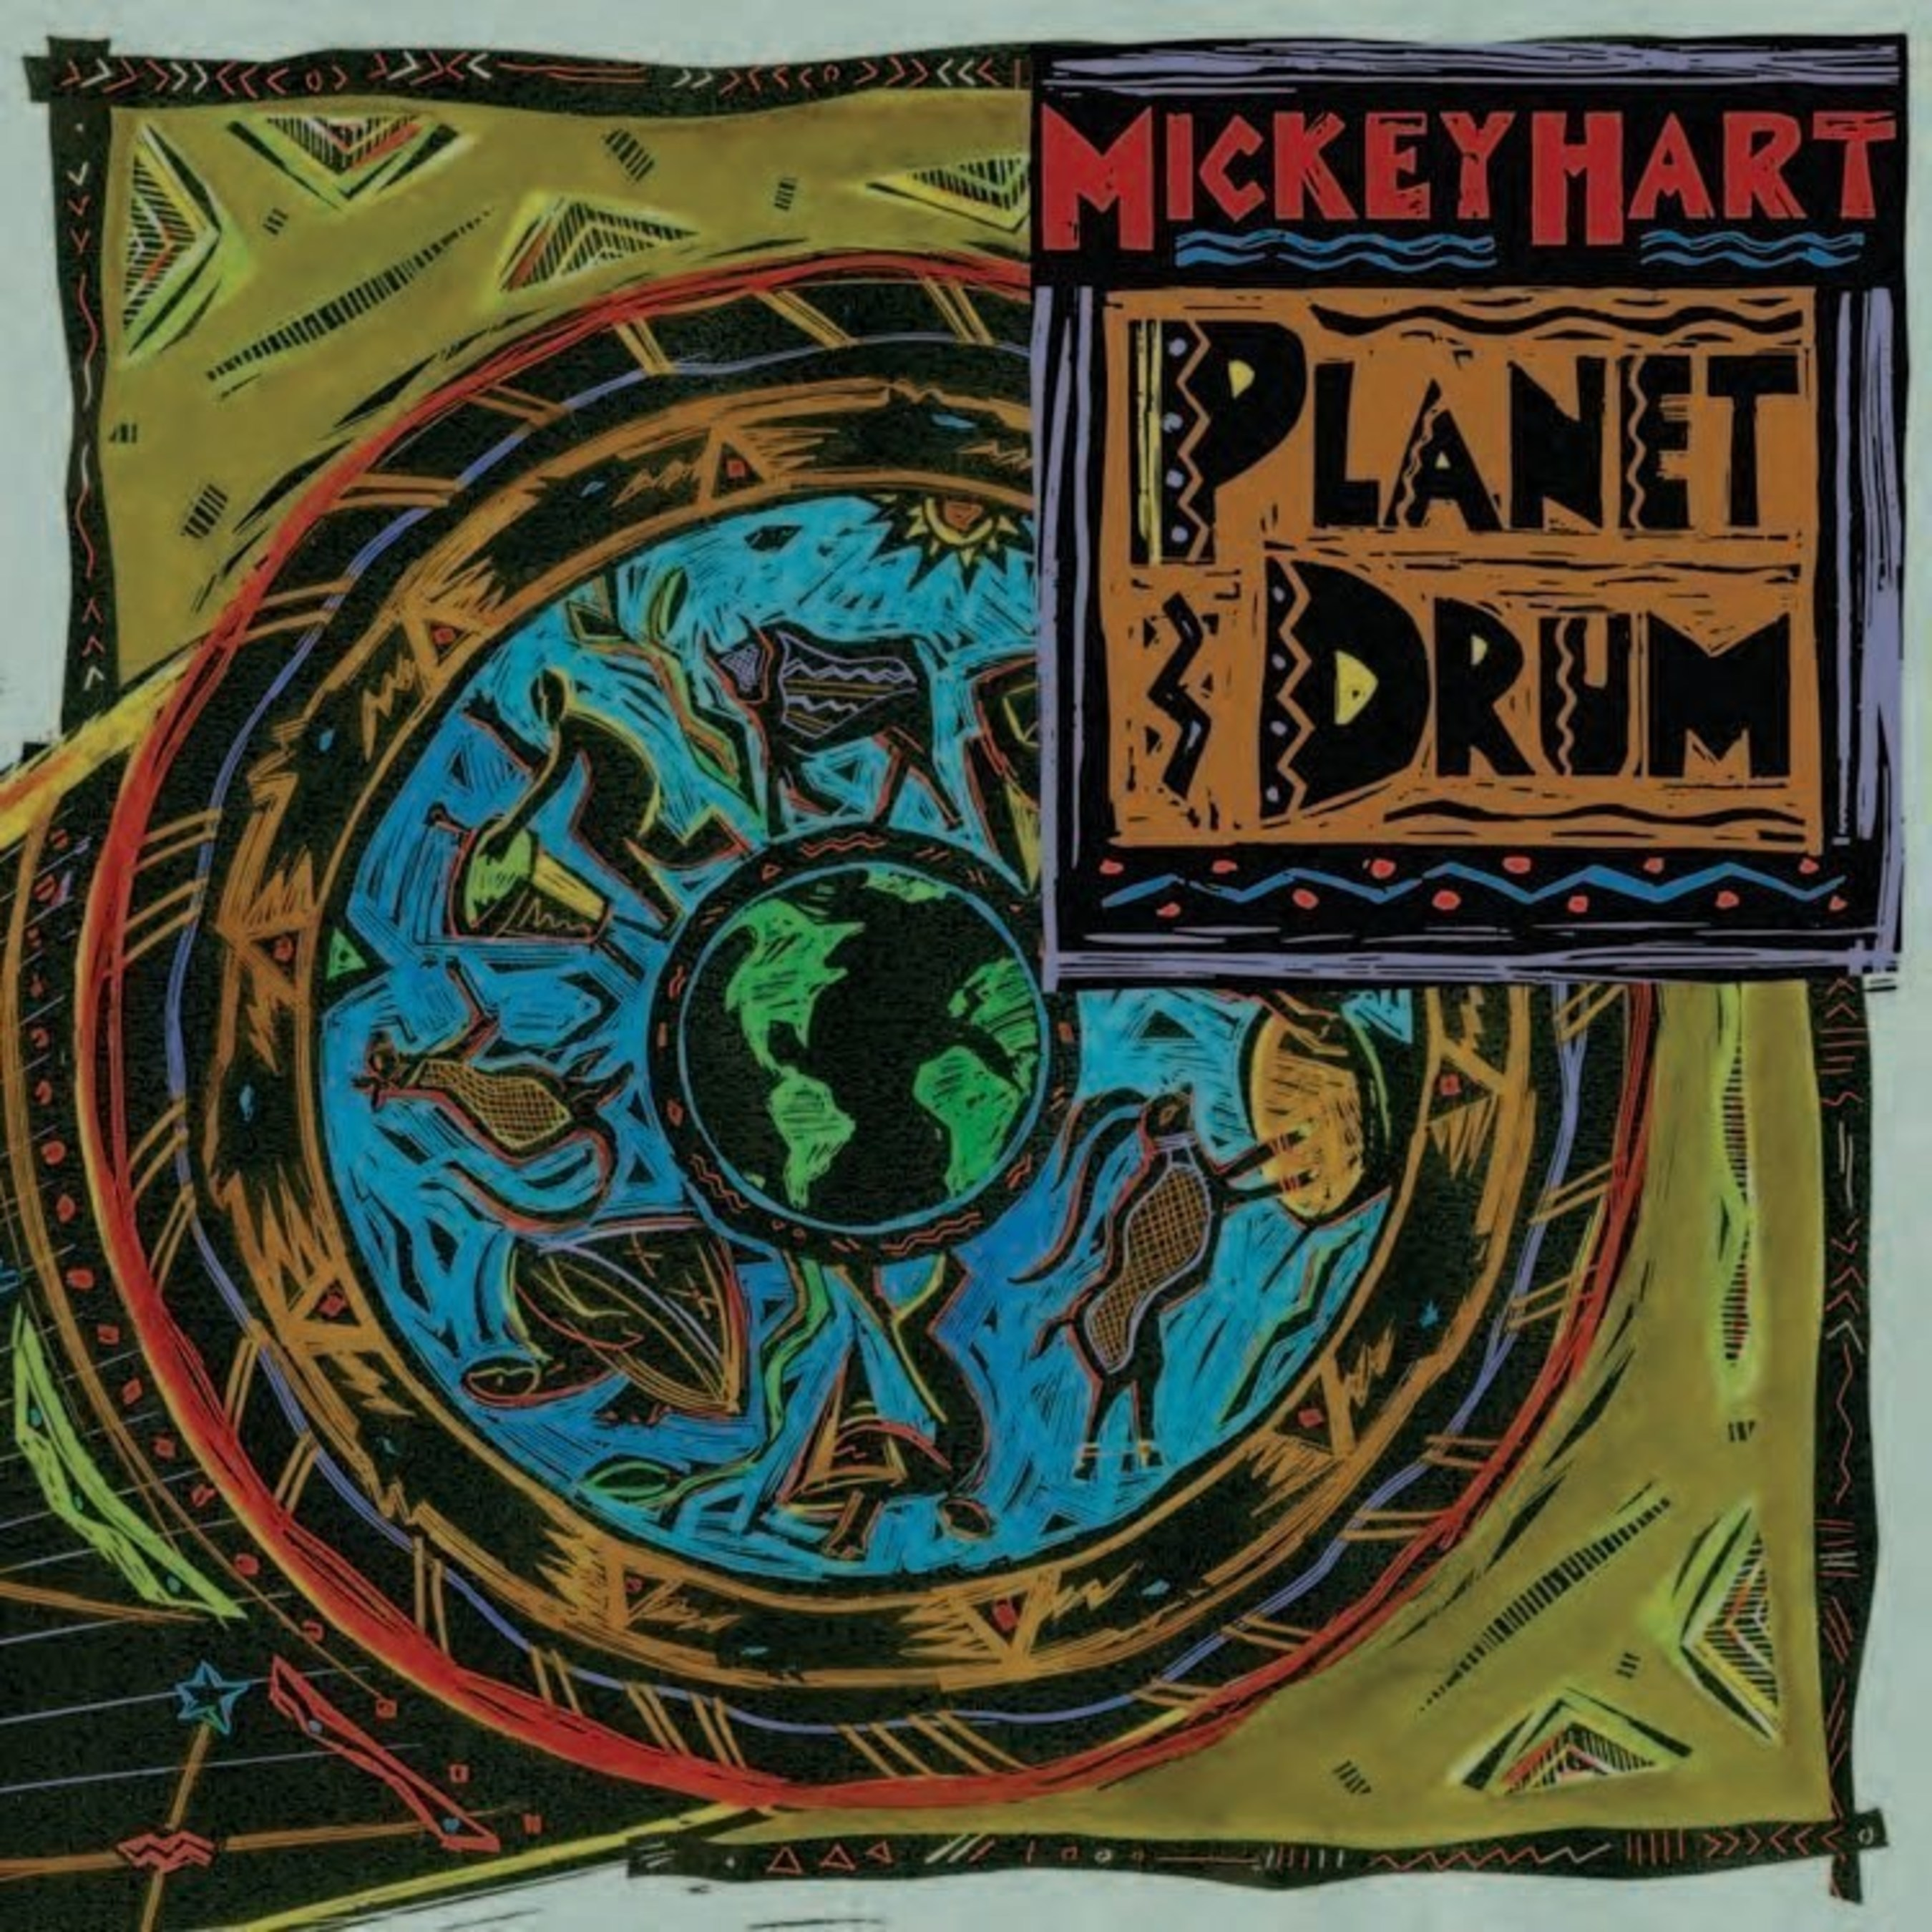 Mickey Hart: Return to Planet Drum